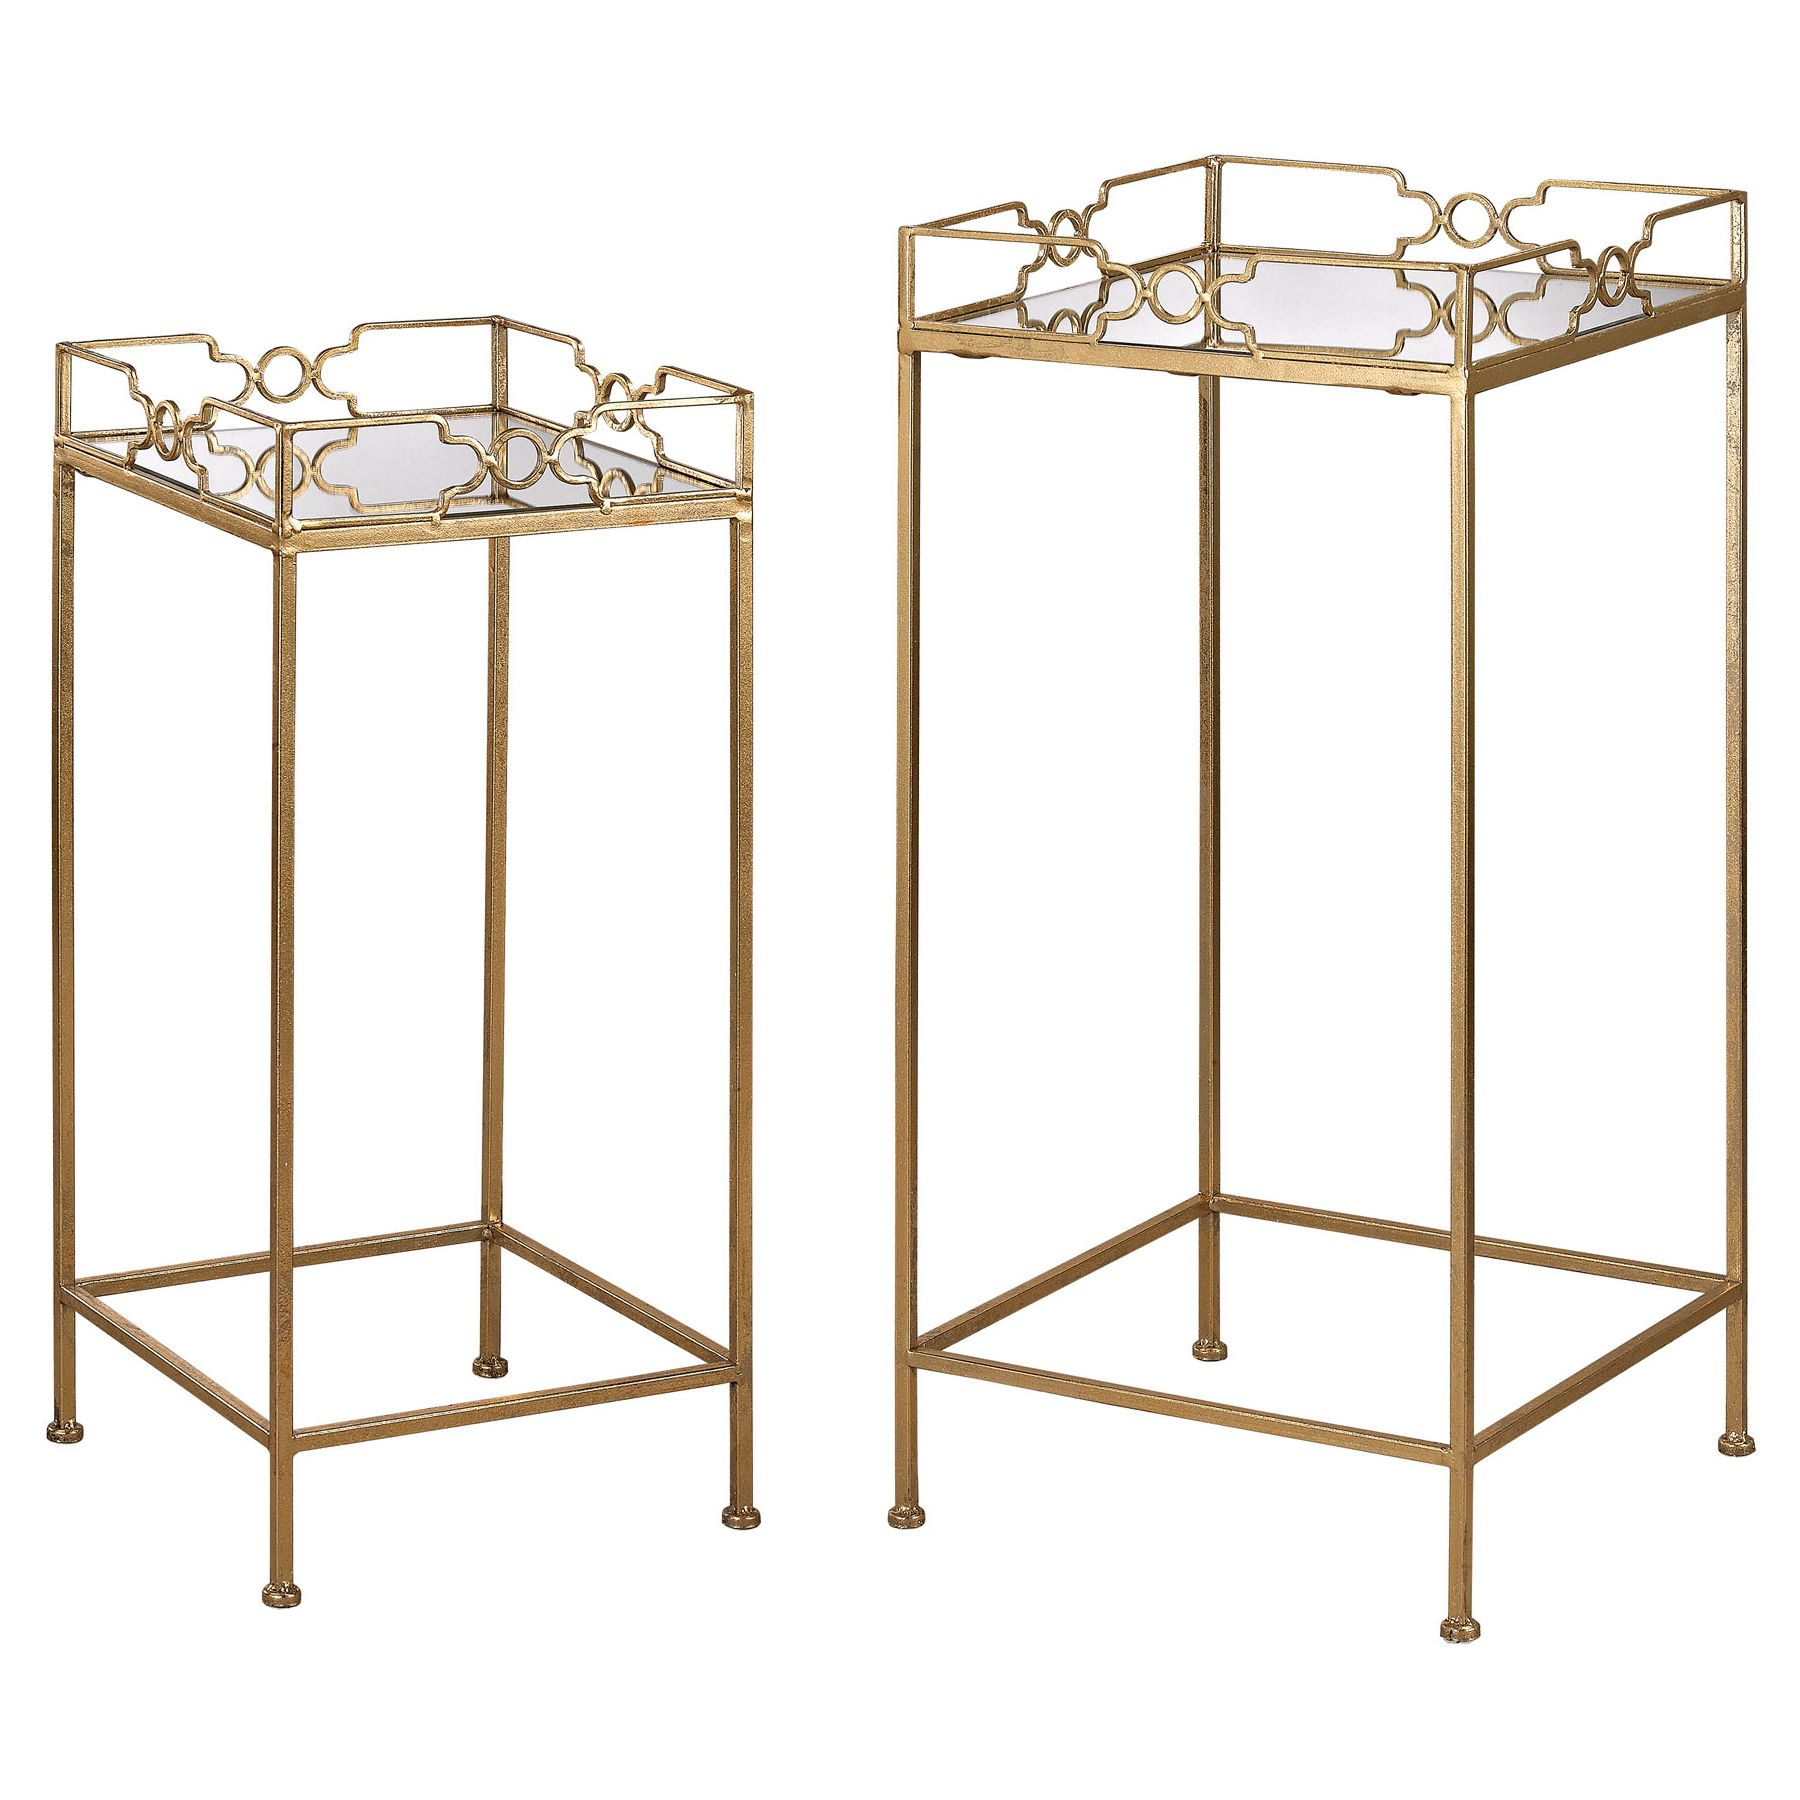 Bow Tie Mirrored Side Tables In Gold Leaf & Mirror